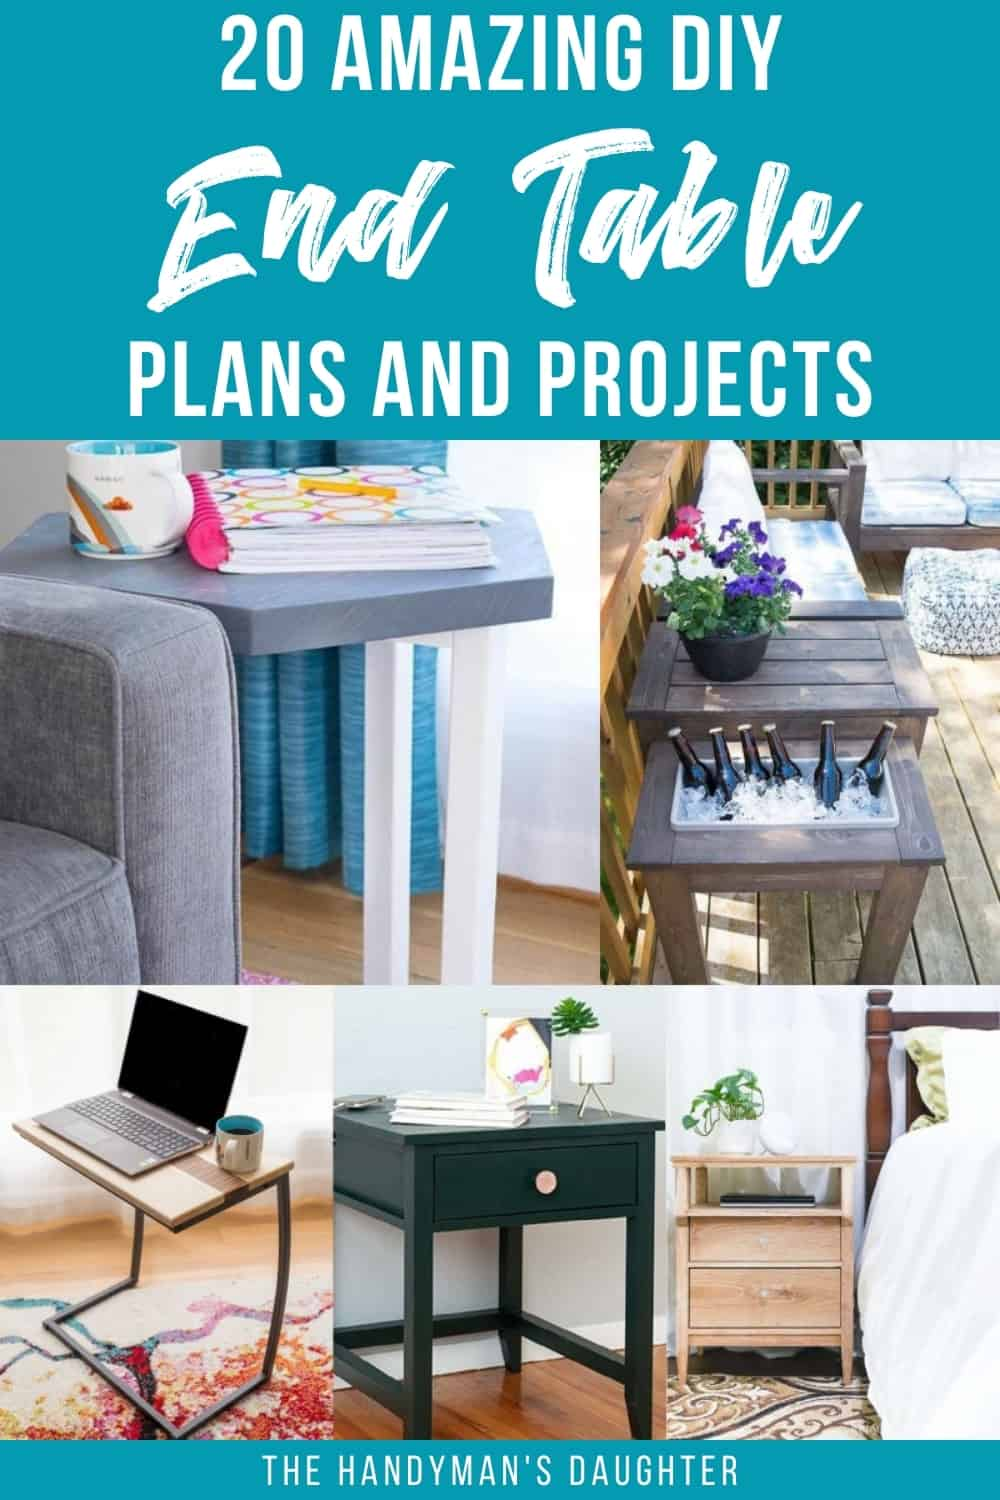 20 amazing DIY end table plans and projects